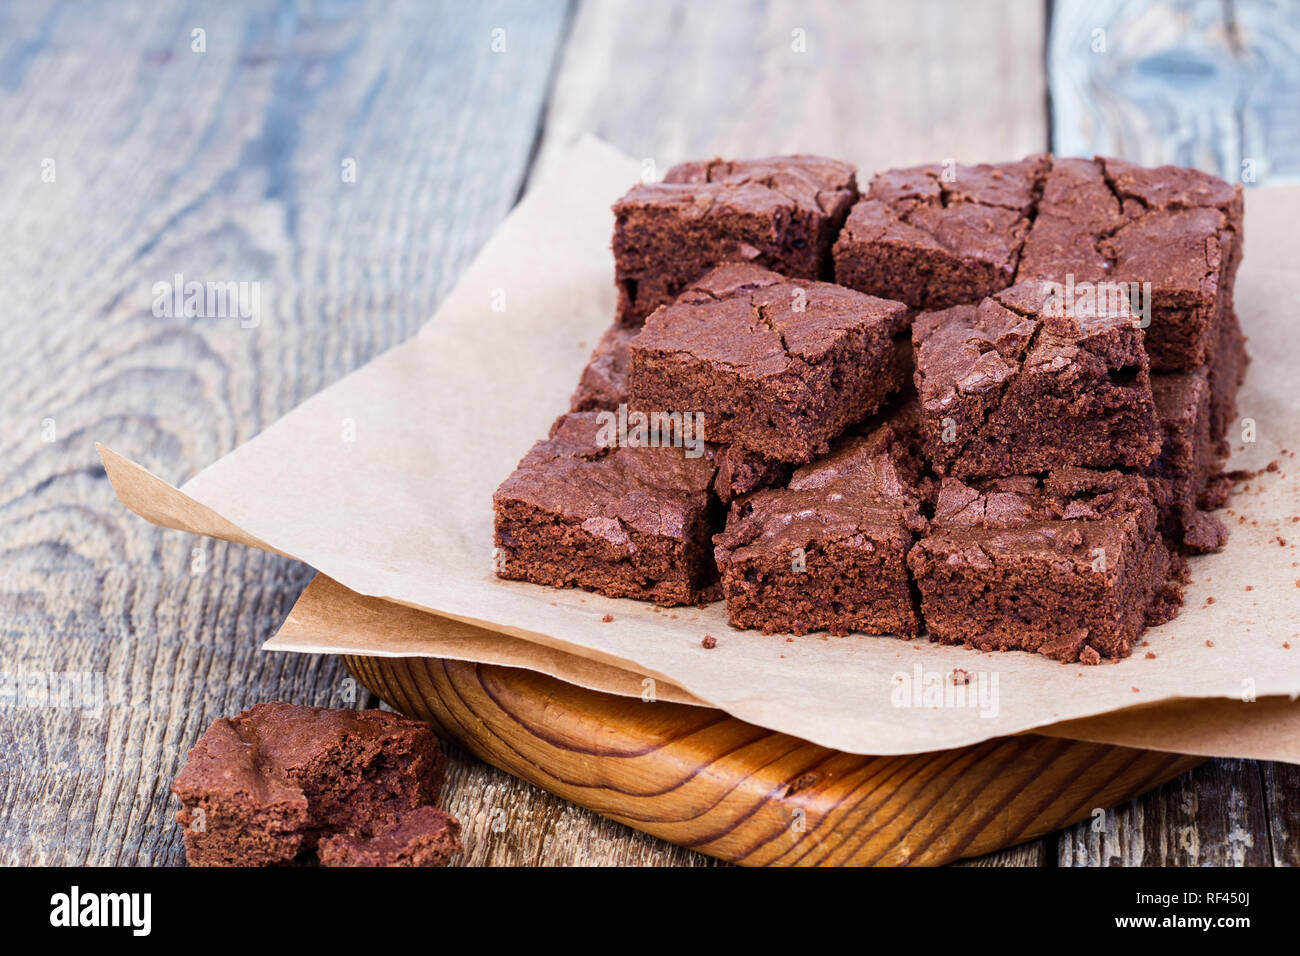 Pieces of freshly baked chocolate brownie on rustic wooden board, close-up, selective focus - Stock Image